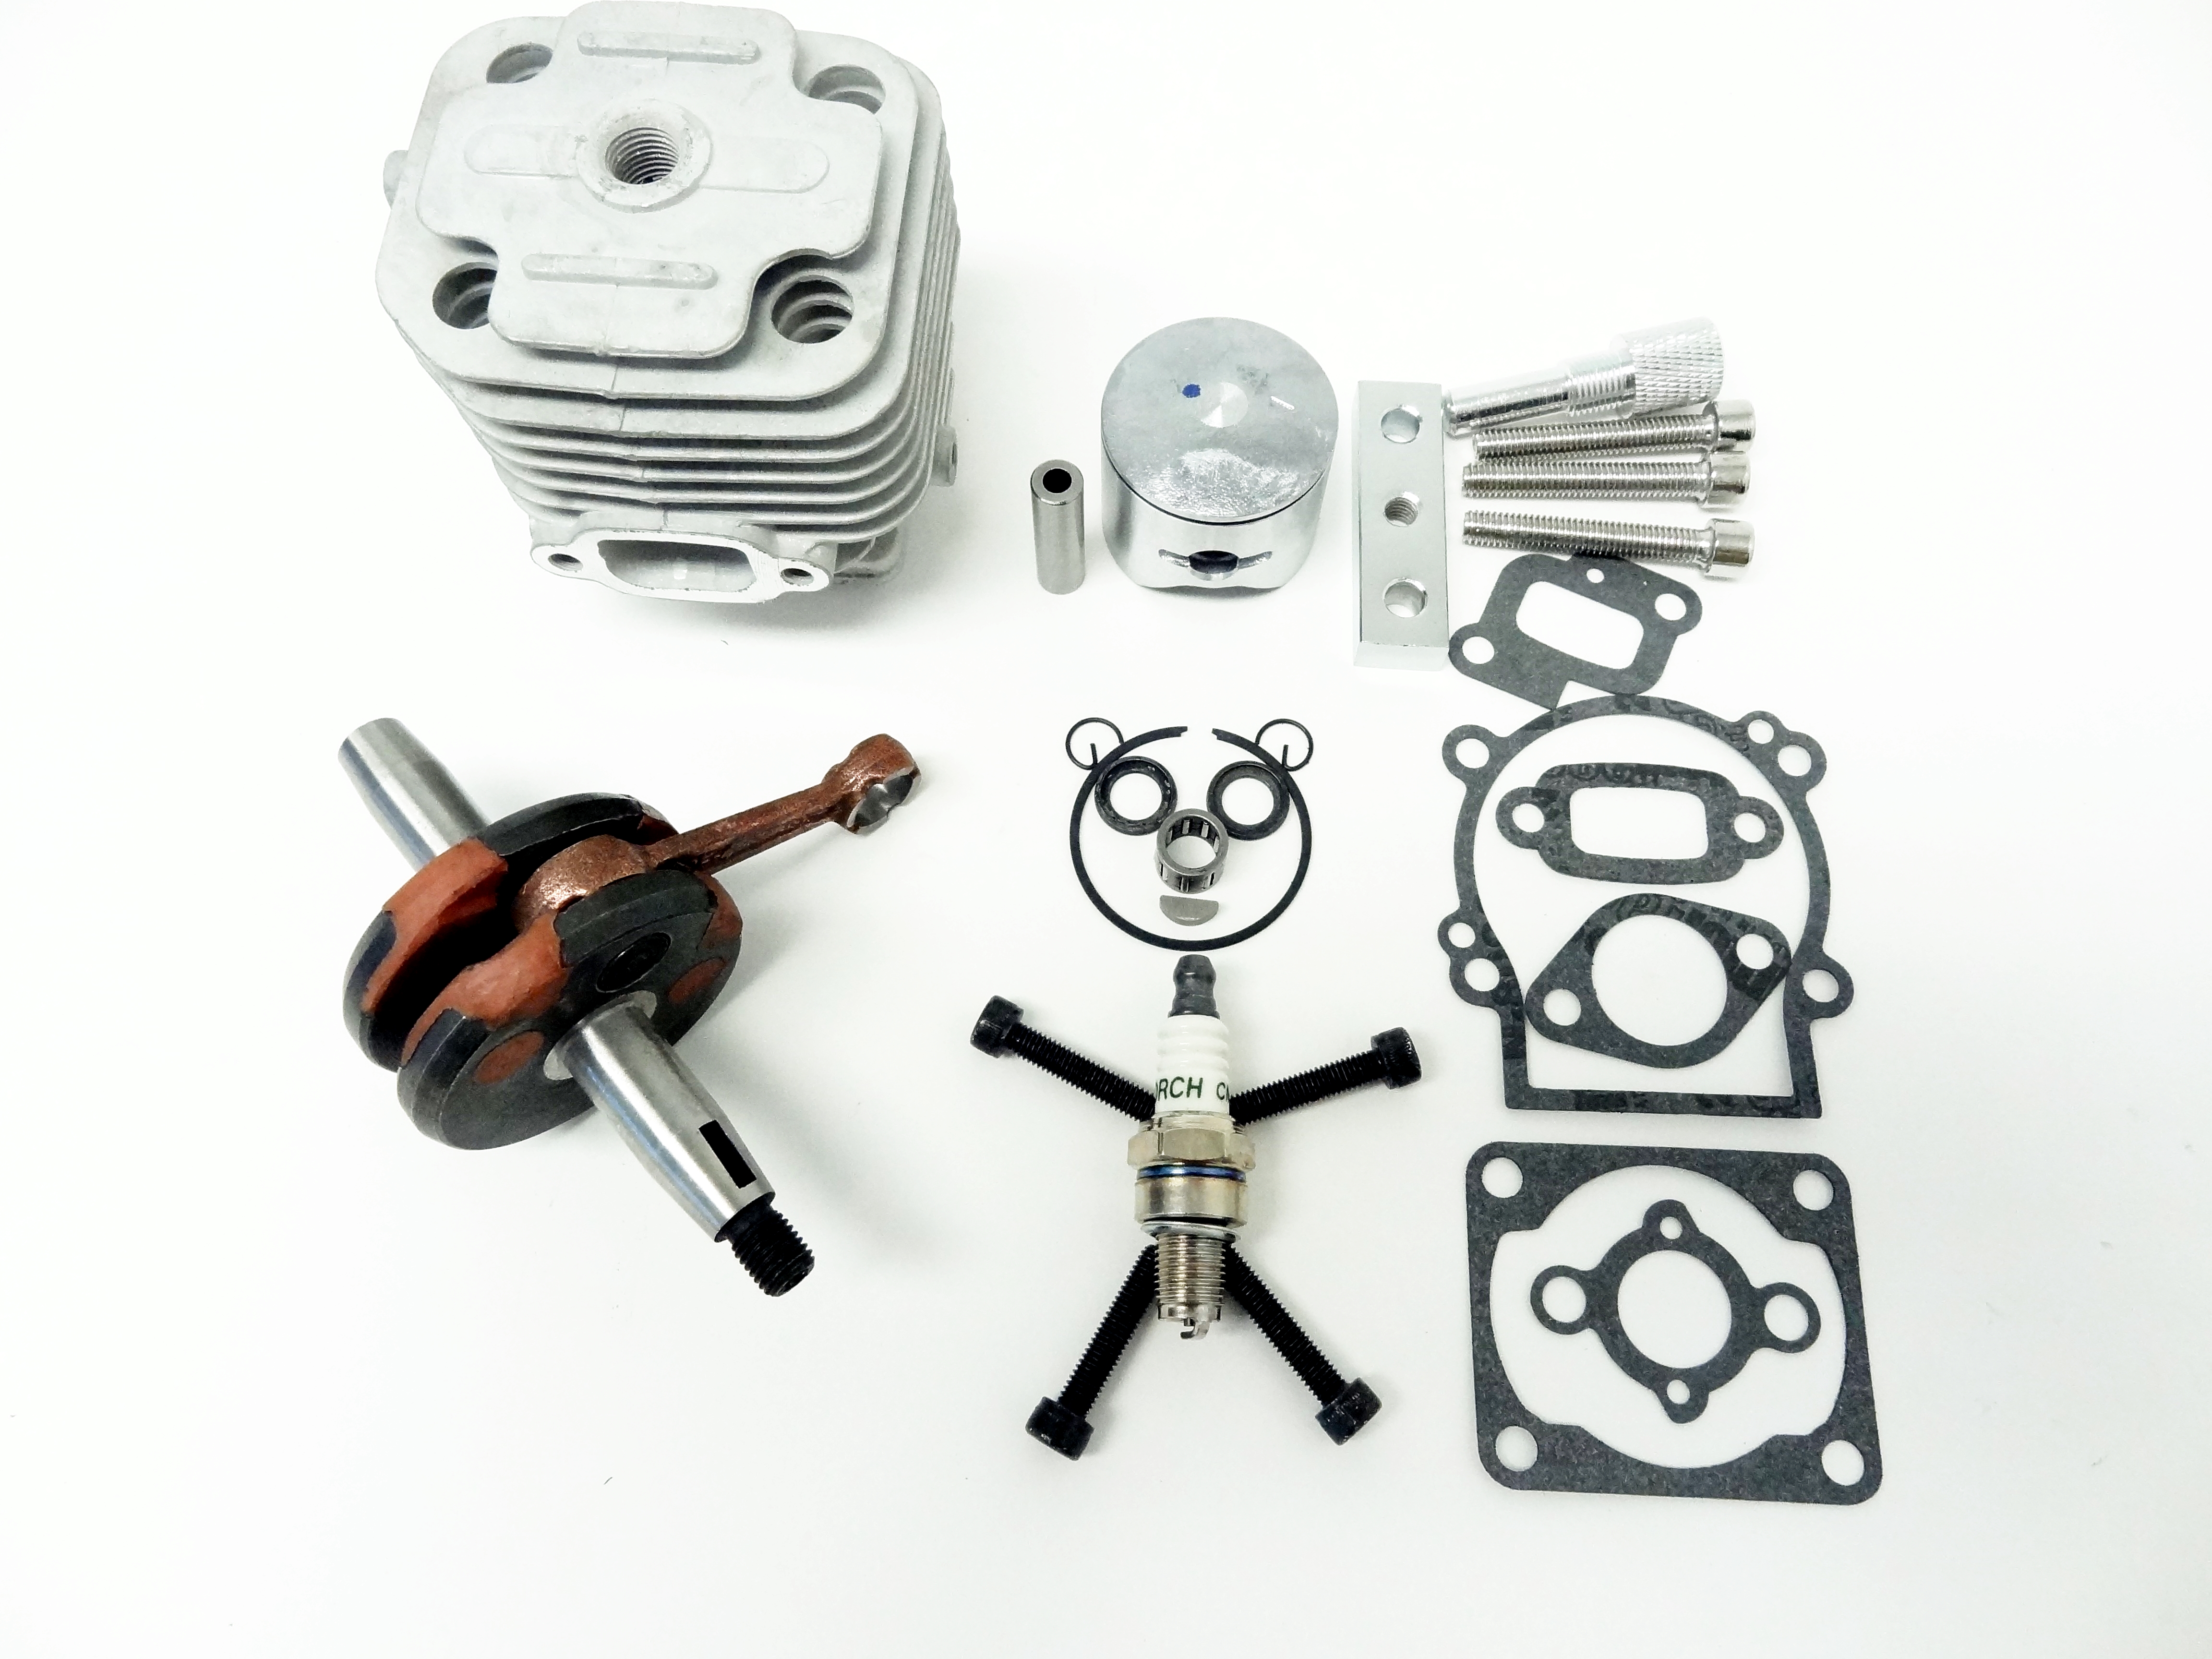 4 Bolt 30.5cc Engine Rebuild Kit